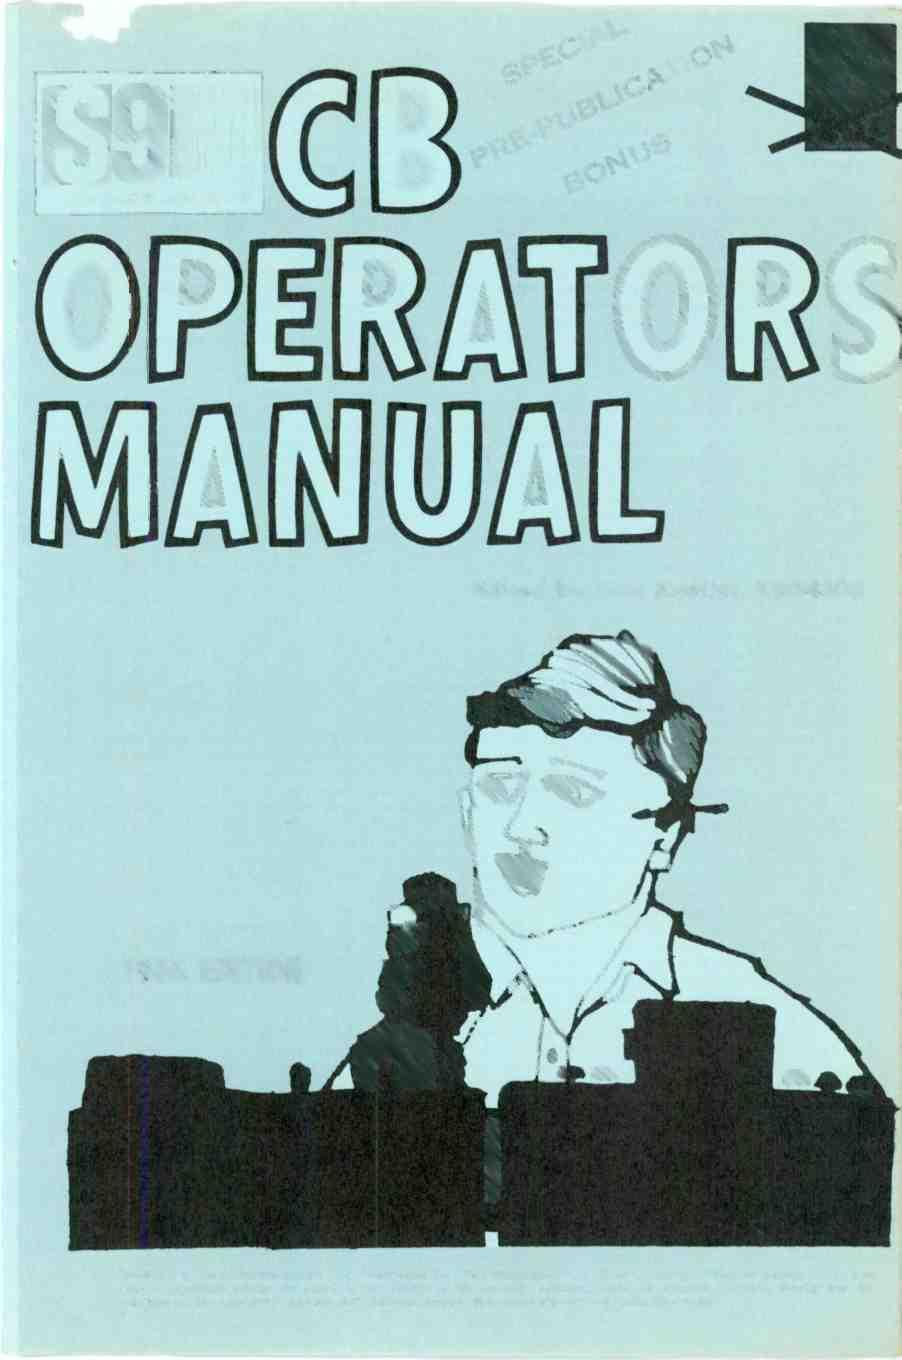 8 PAGE CBOPERIOR\'S GUIDE - PAGE 35. APRIL Oc. \'The OFFICIAL CB RADIO ...